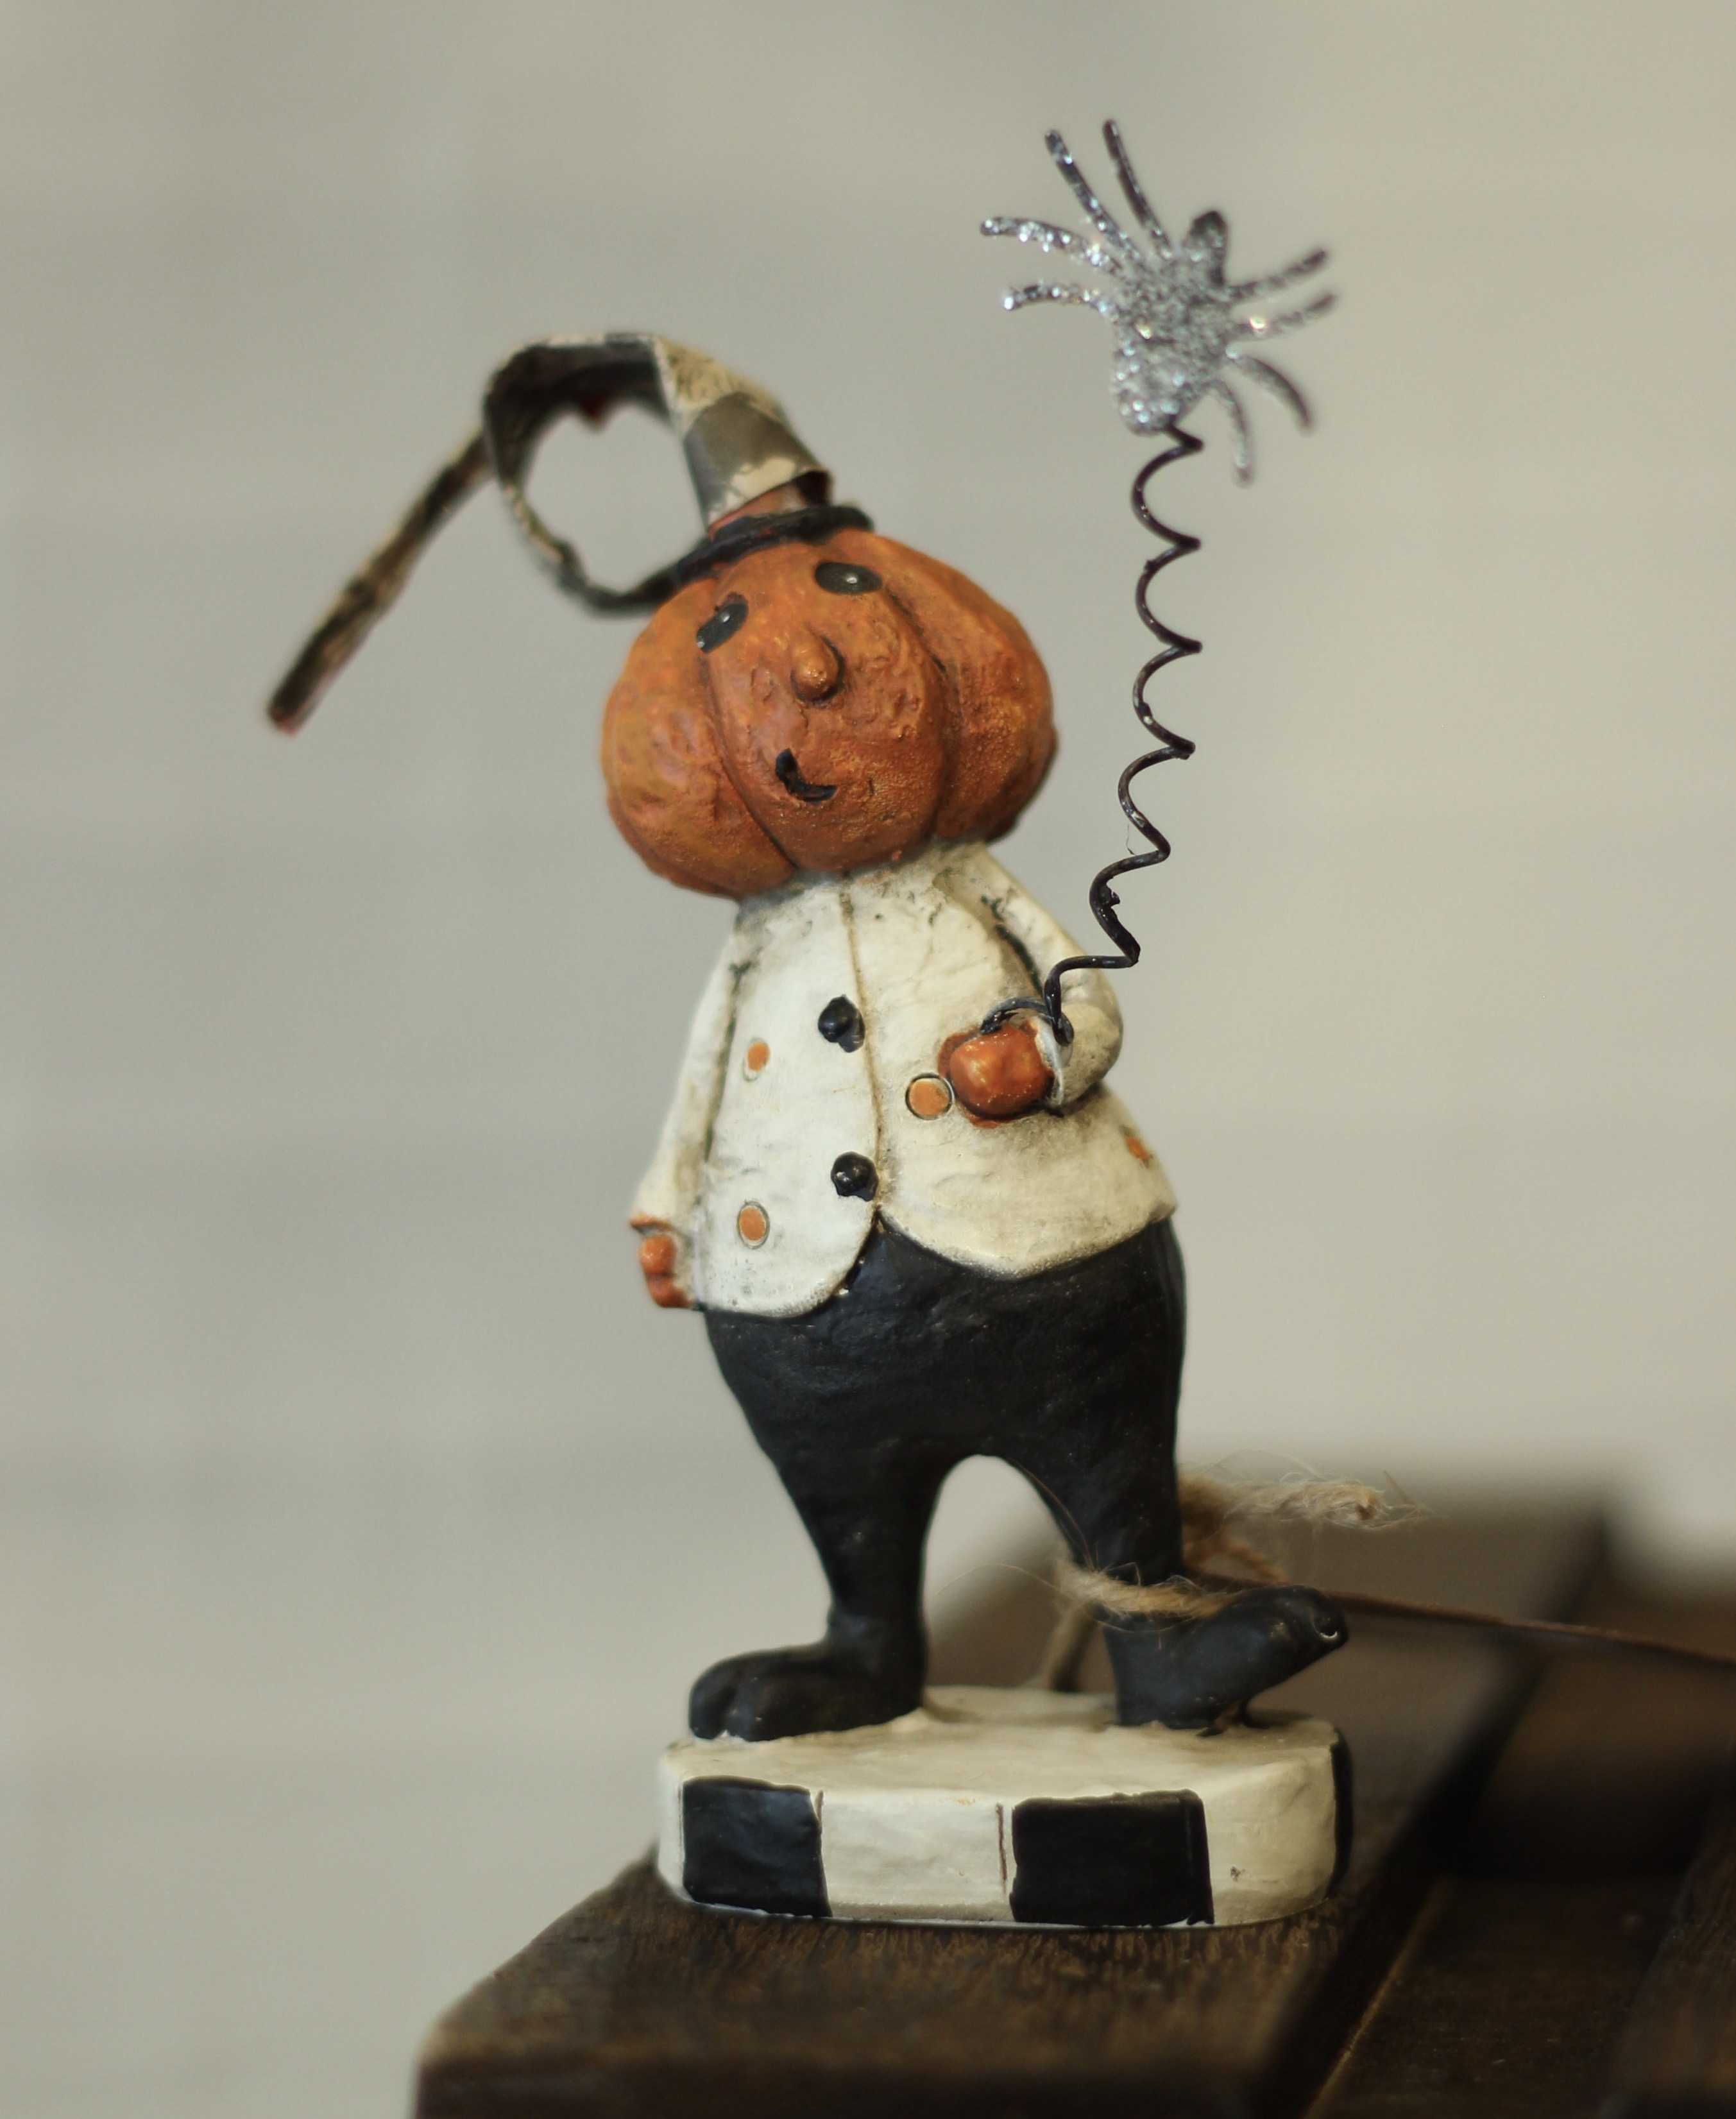 Halloween Decorating Ideas To Make Your Home Spooktacular!